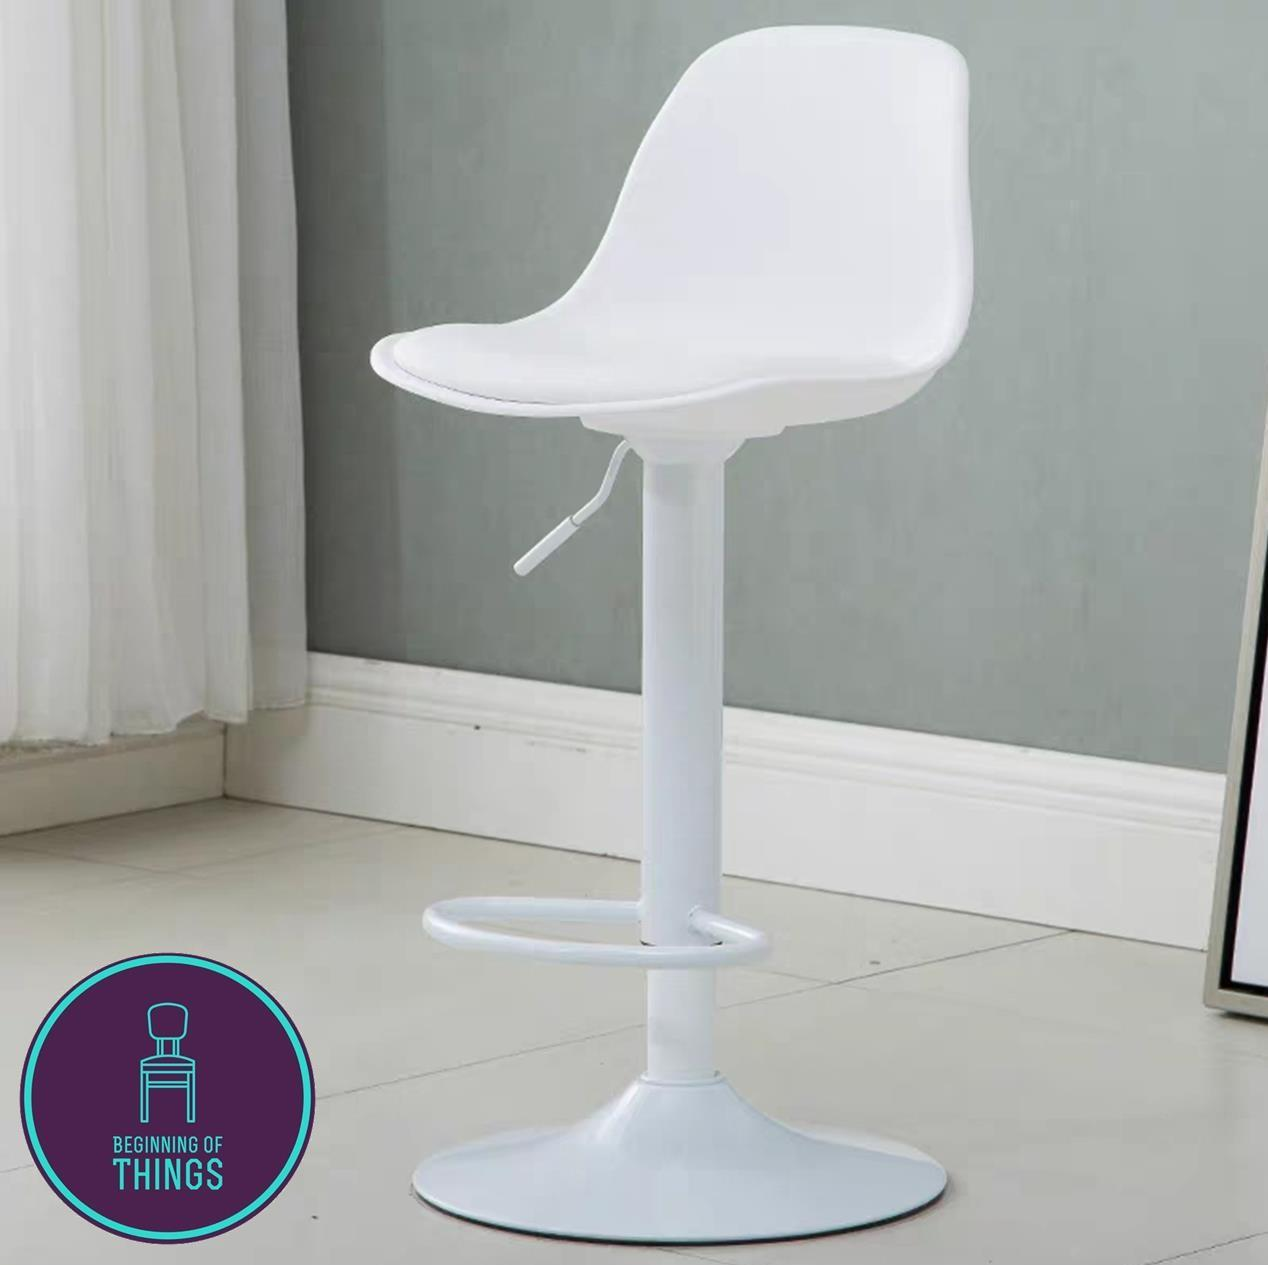 EAMES Inspired Padded Bar Stool Chair White with White Legs